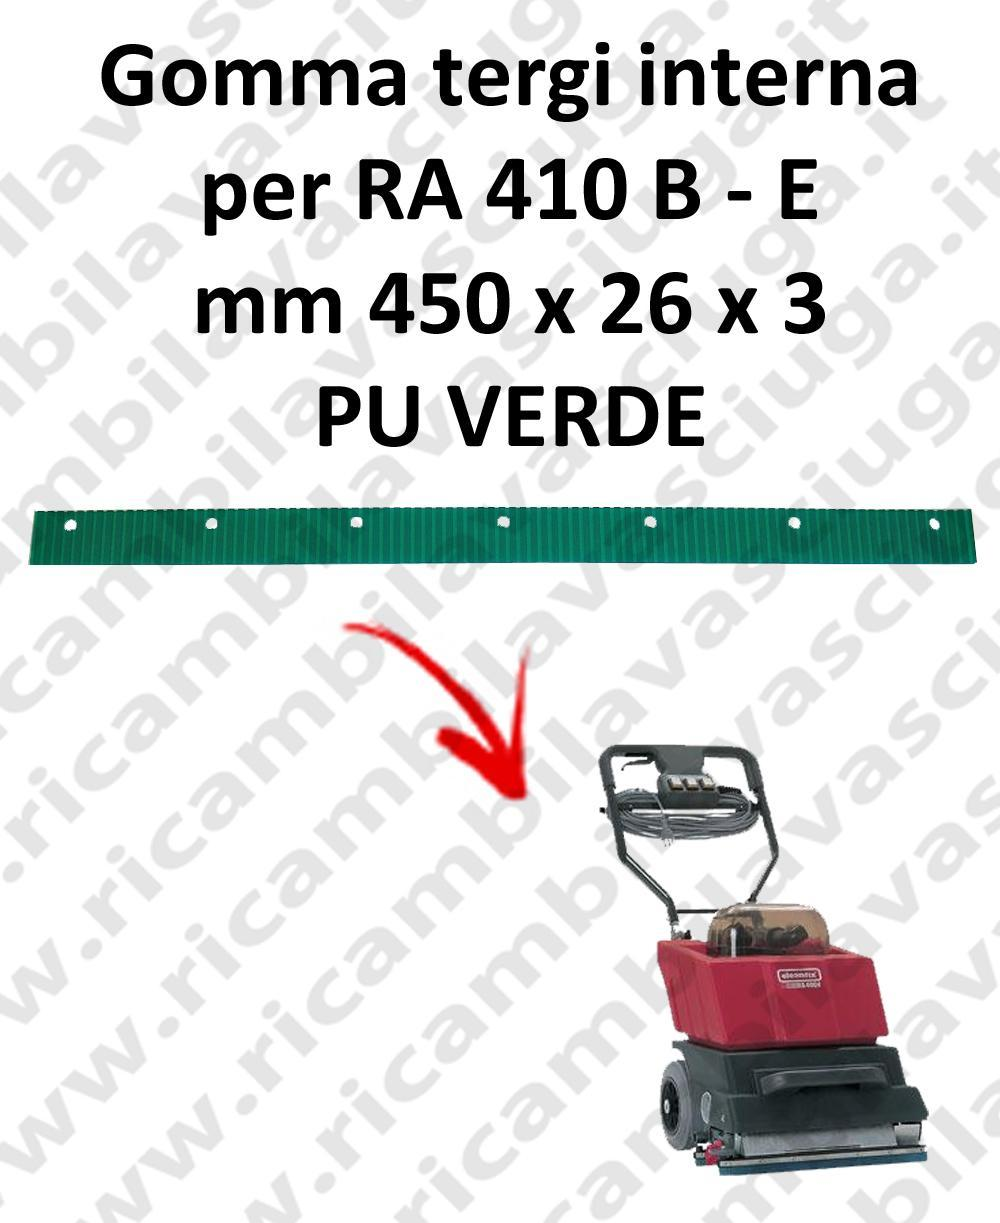 RA 410 B - E Inner Squeegee rubber for CLEANFIX accessories, reaplacement, spare parts,o scrubber dryer squeegee